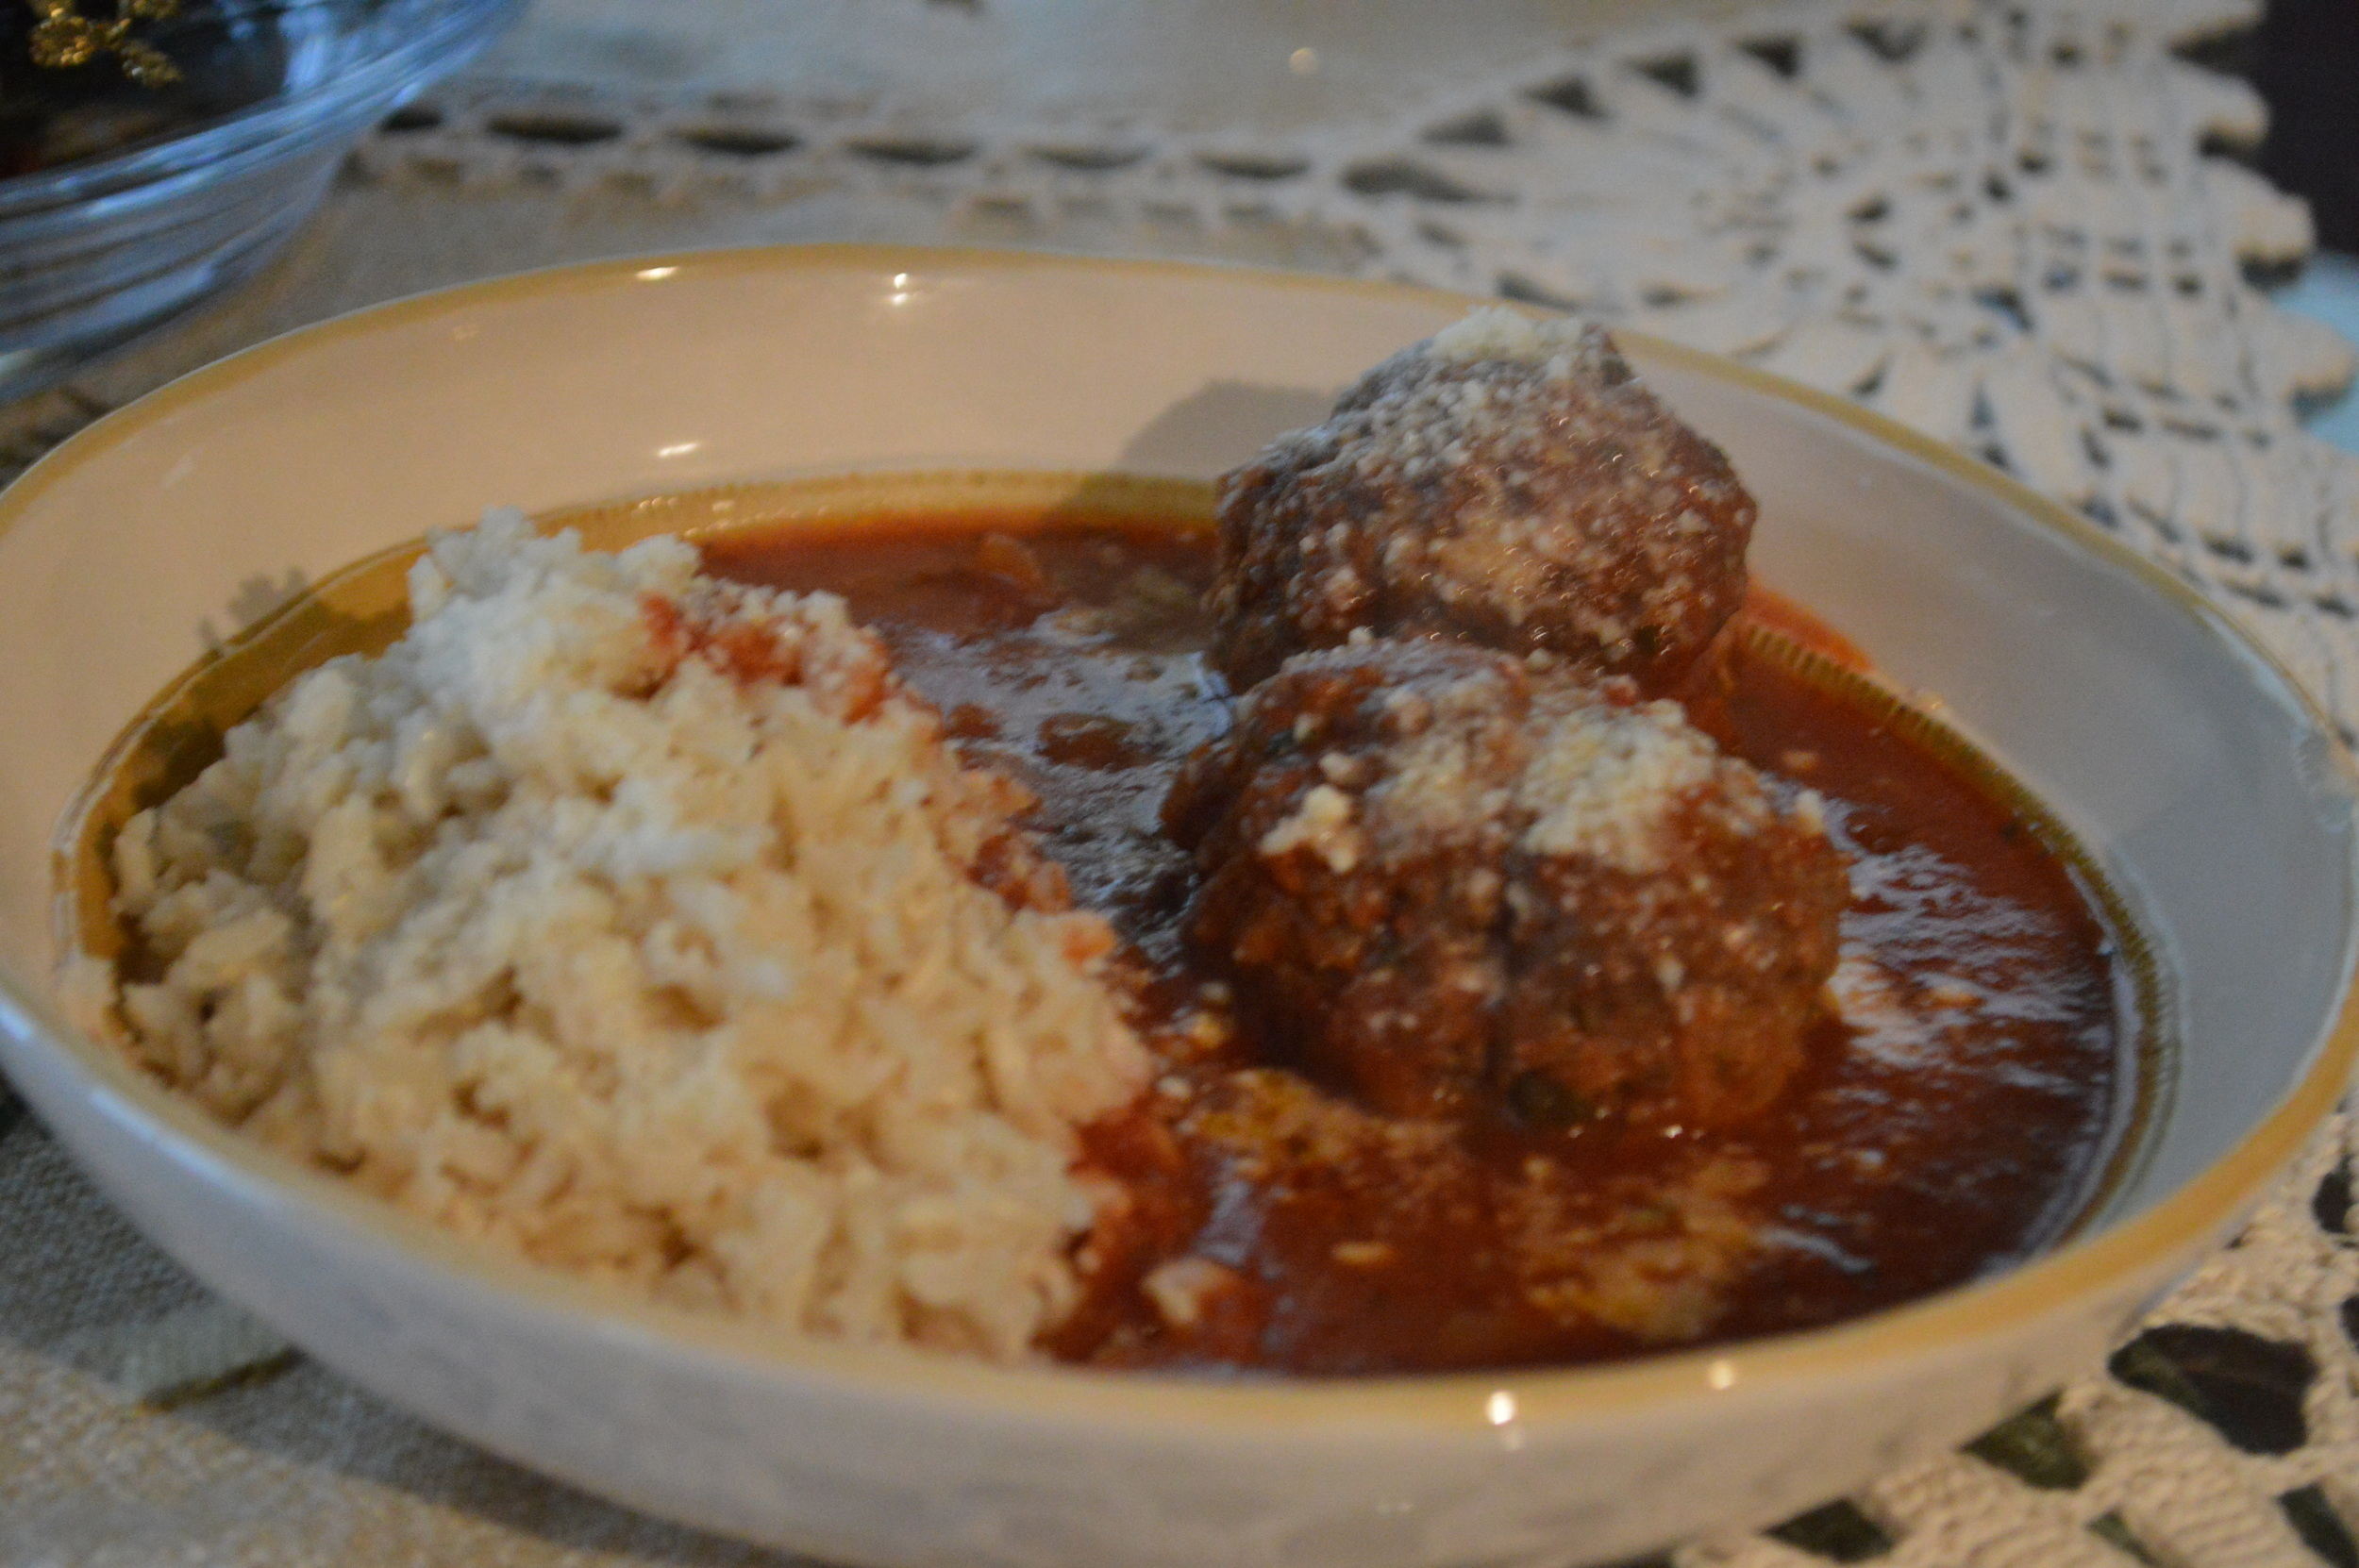 Meatballs + Brown Rice